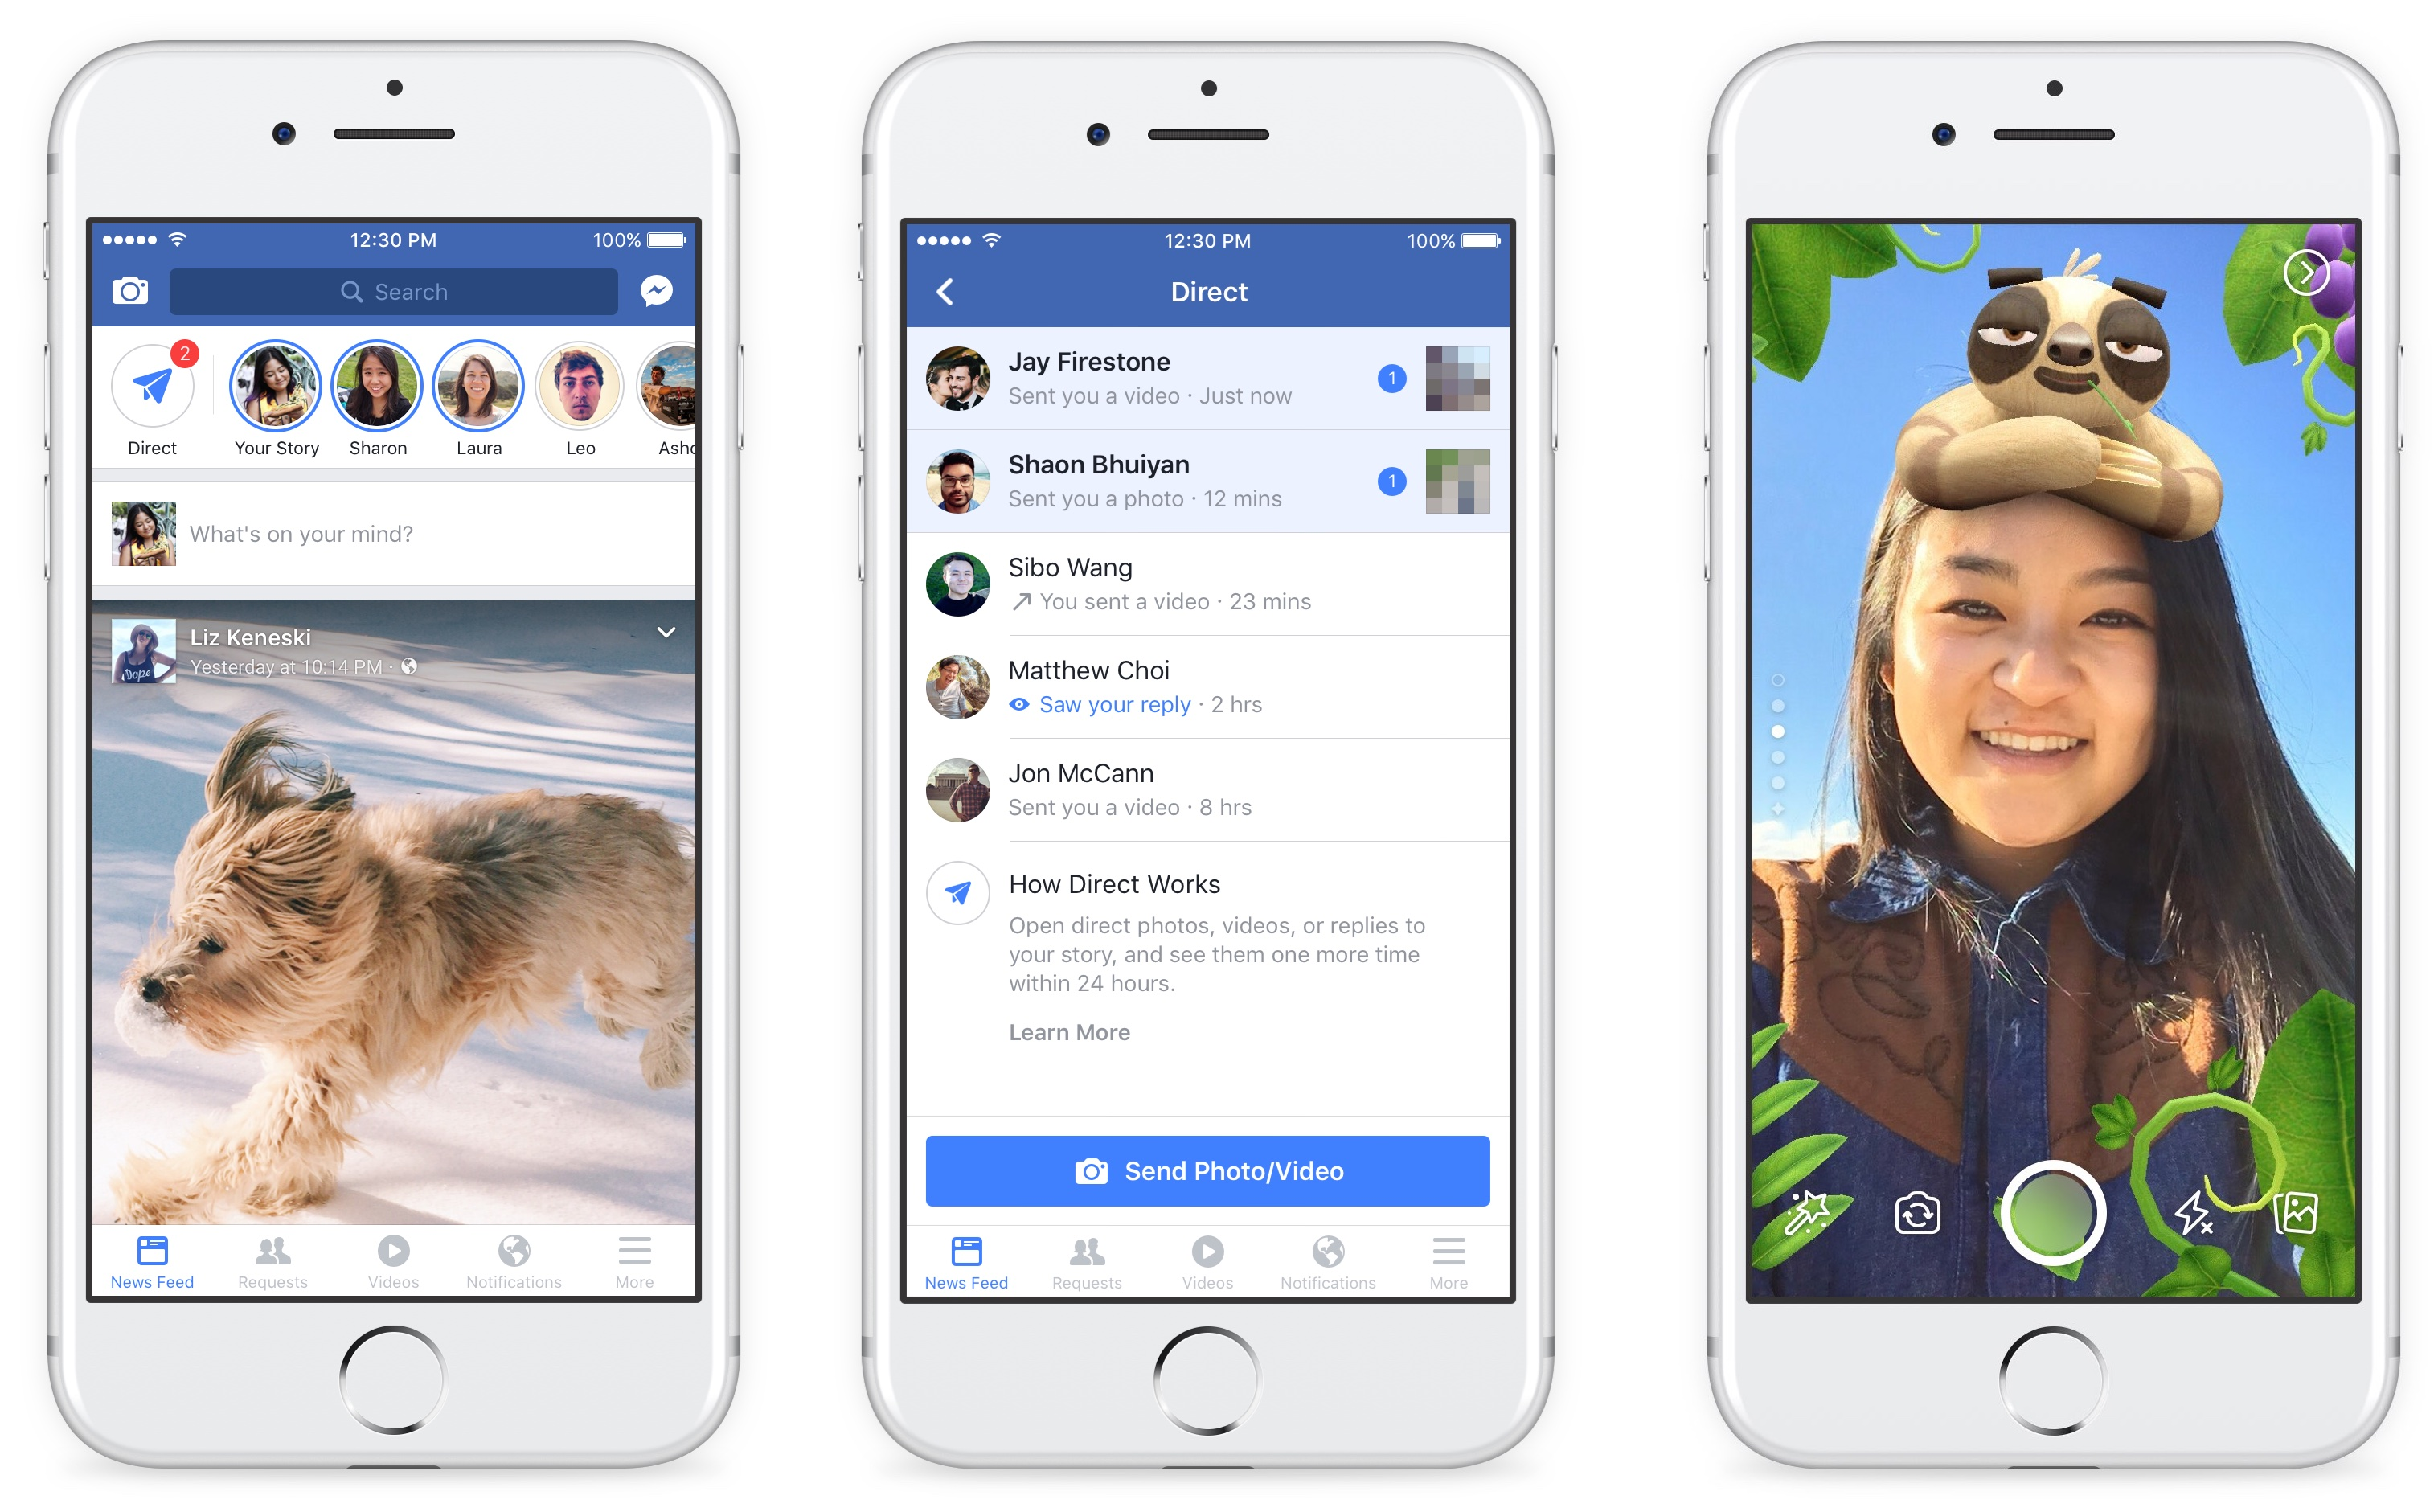 Facebook adds Snapchat-style effects and auto vanishing Stories to its mainland app